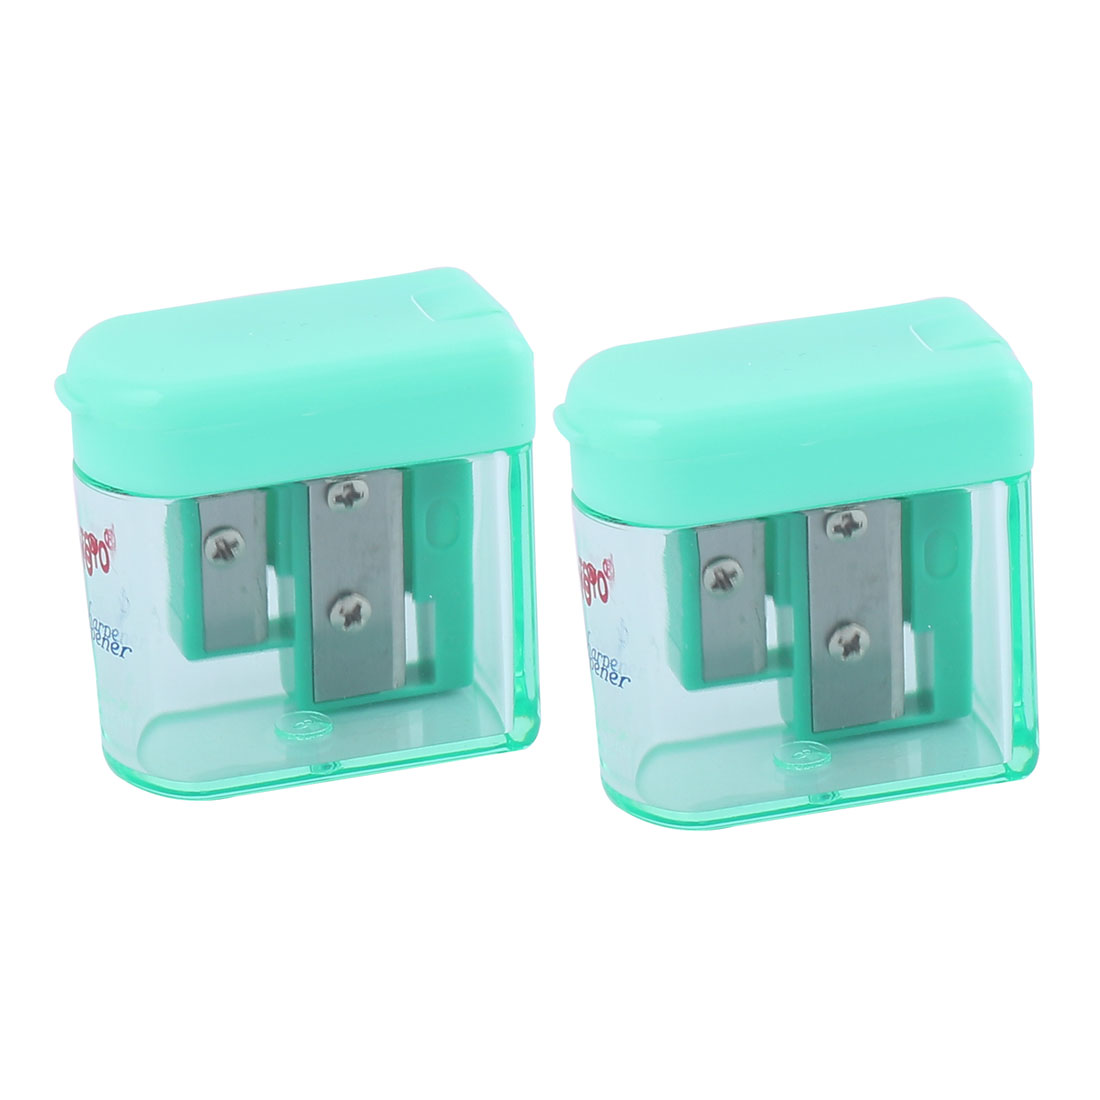 2 Pcs Green Clear 8mm Diameter Office 2 Holes Hinged Cover Pencil Sharpener